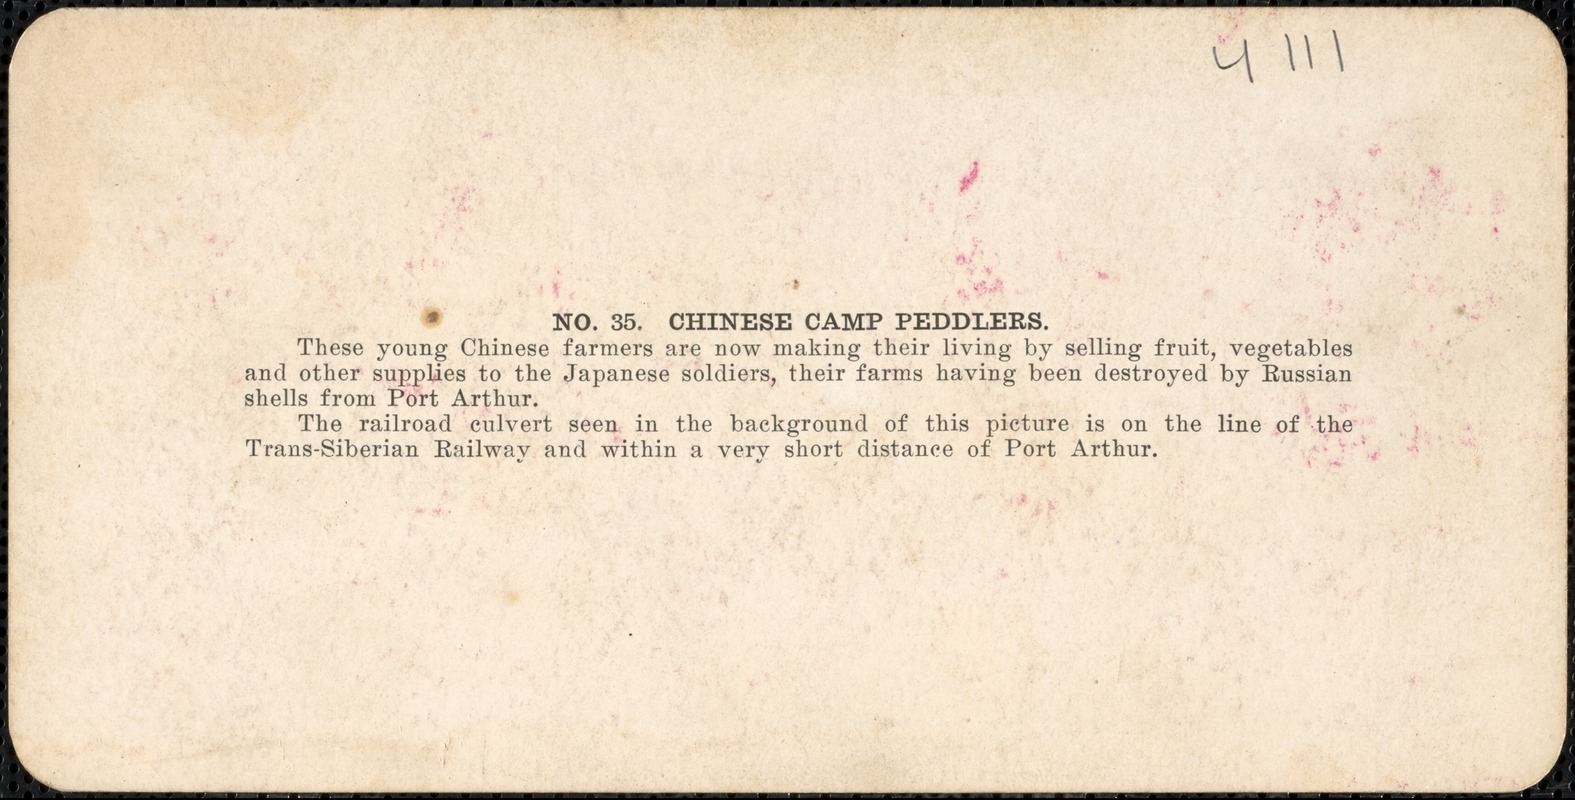 Chinese camp peddlers